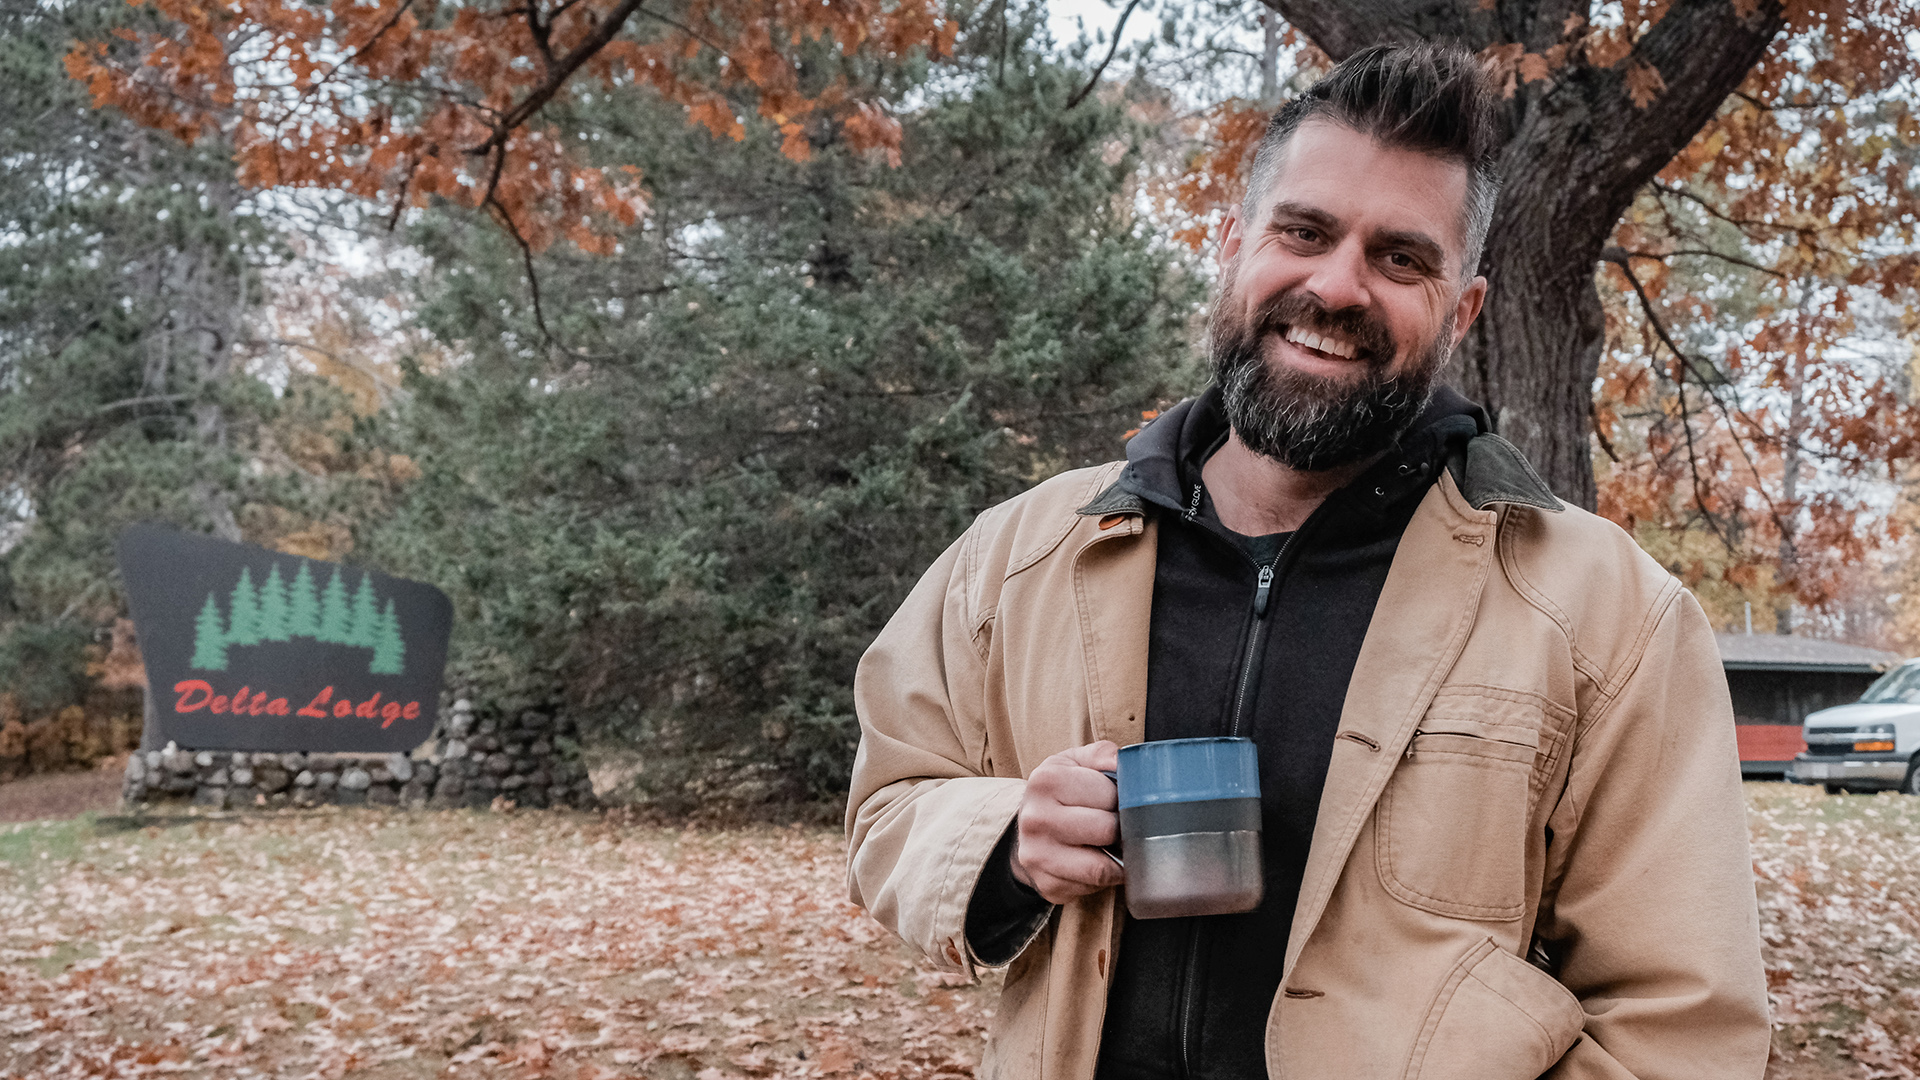 A man standing outdoors holds a coffee cup and smiles at the camera.